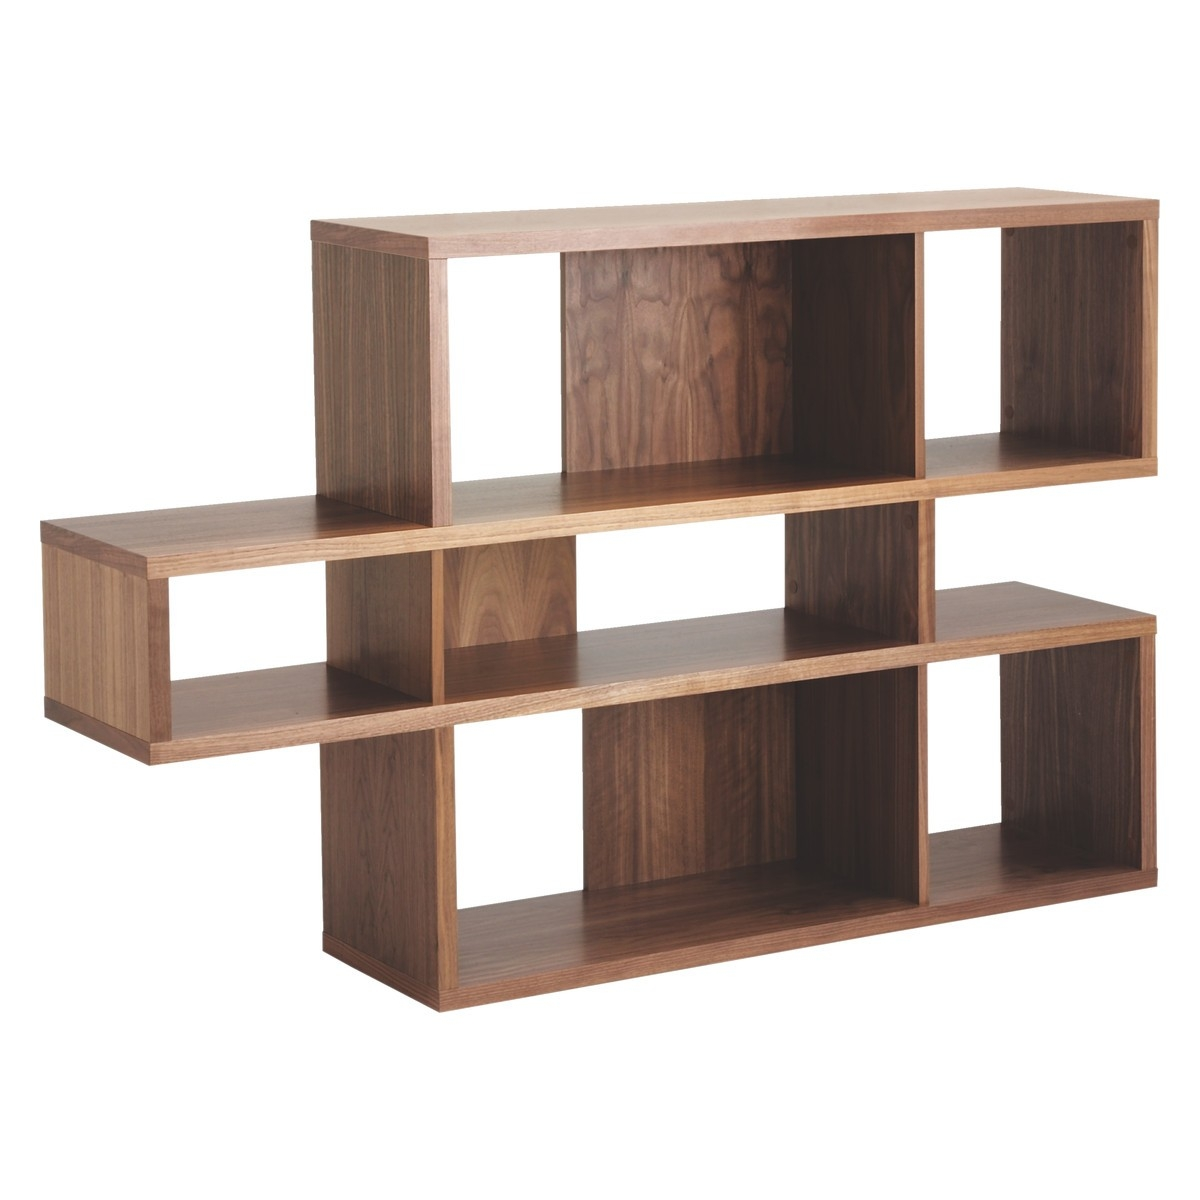 modular shelving units 15 best collection of wooden shelving units 23604